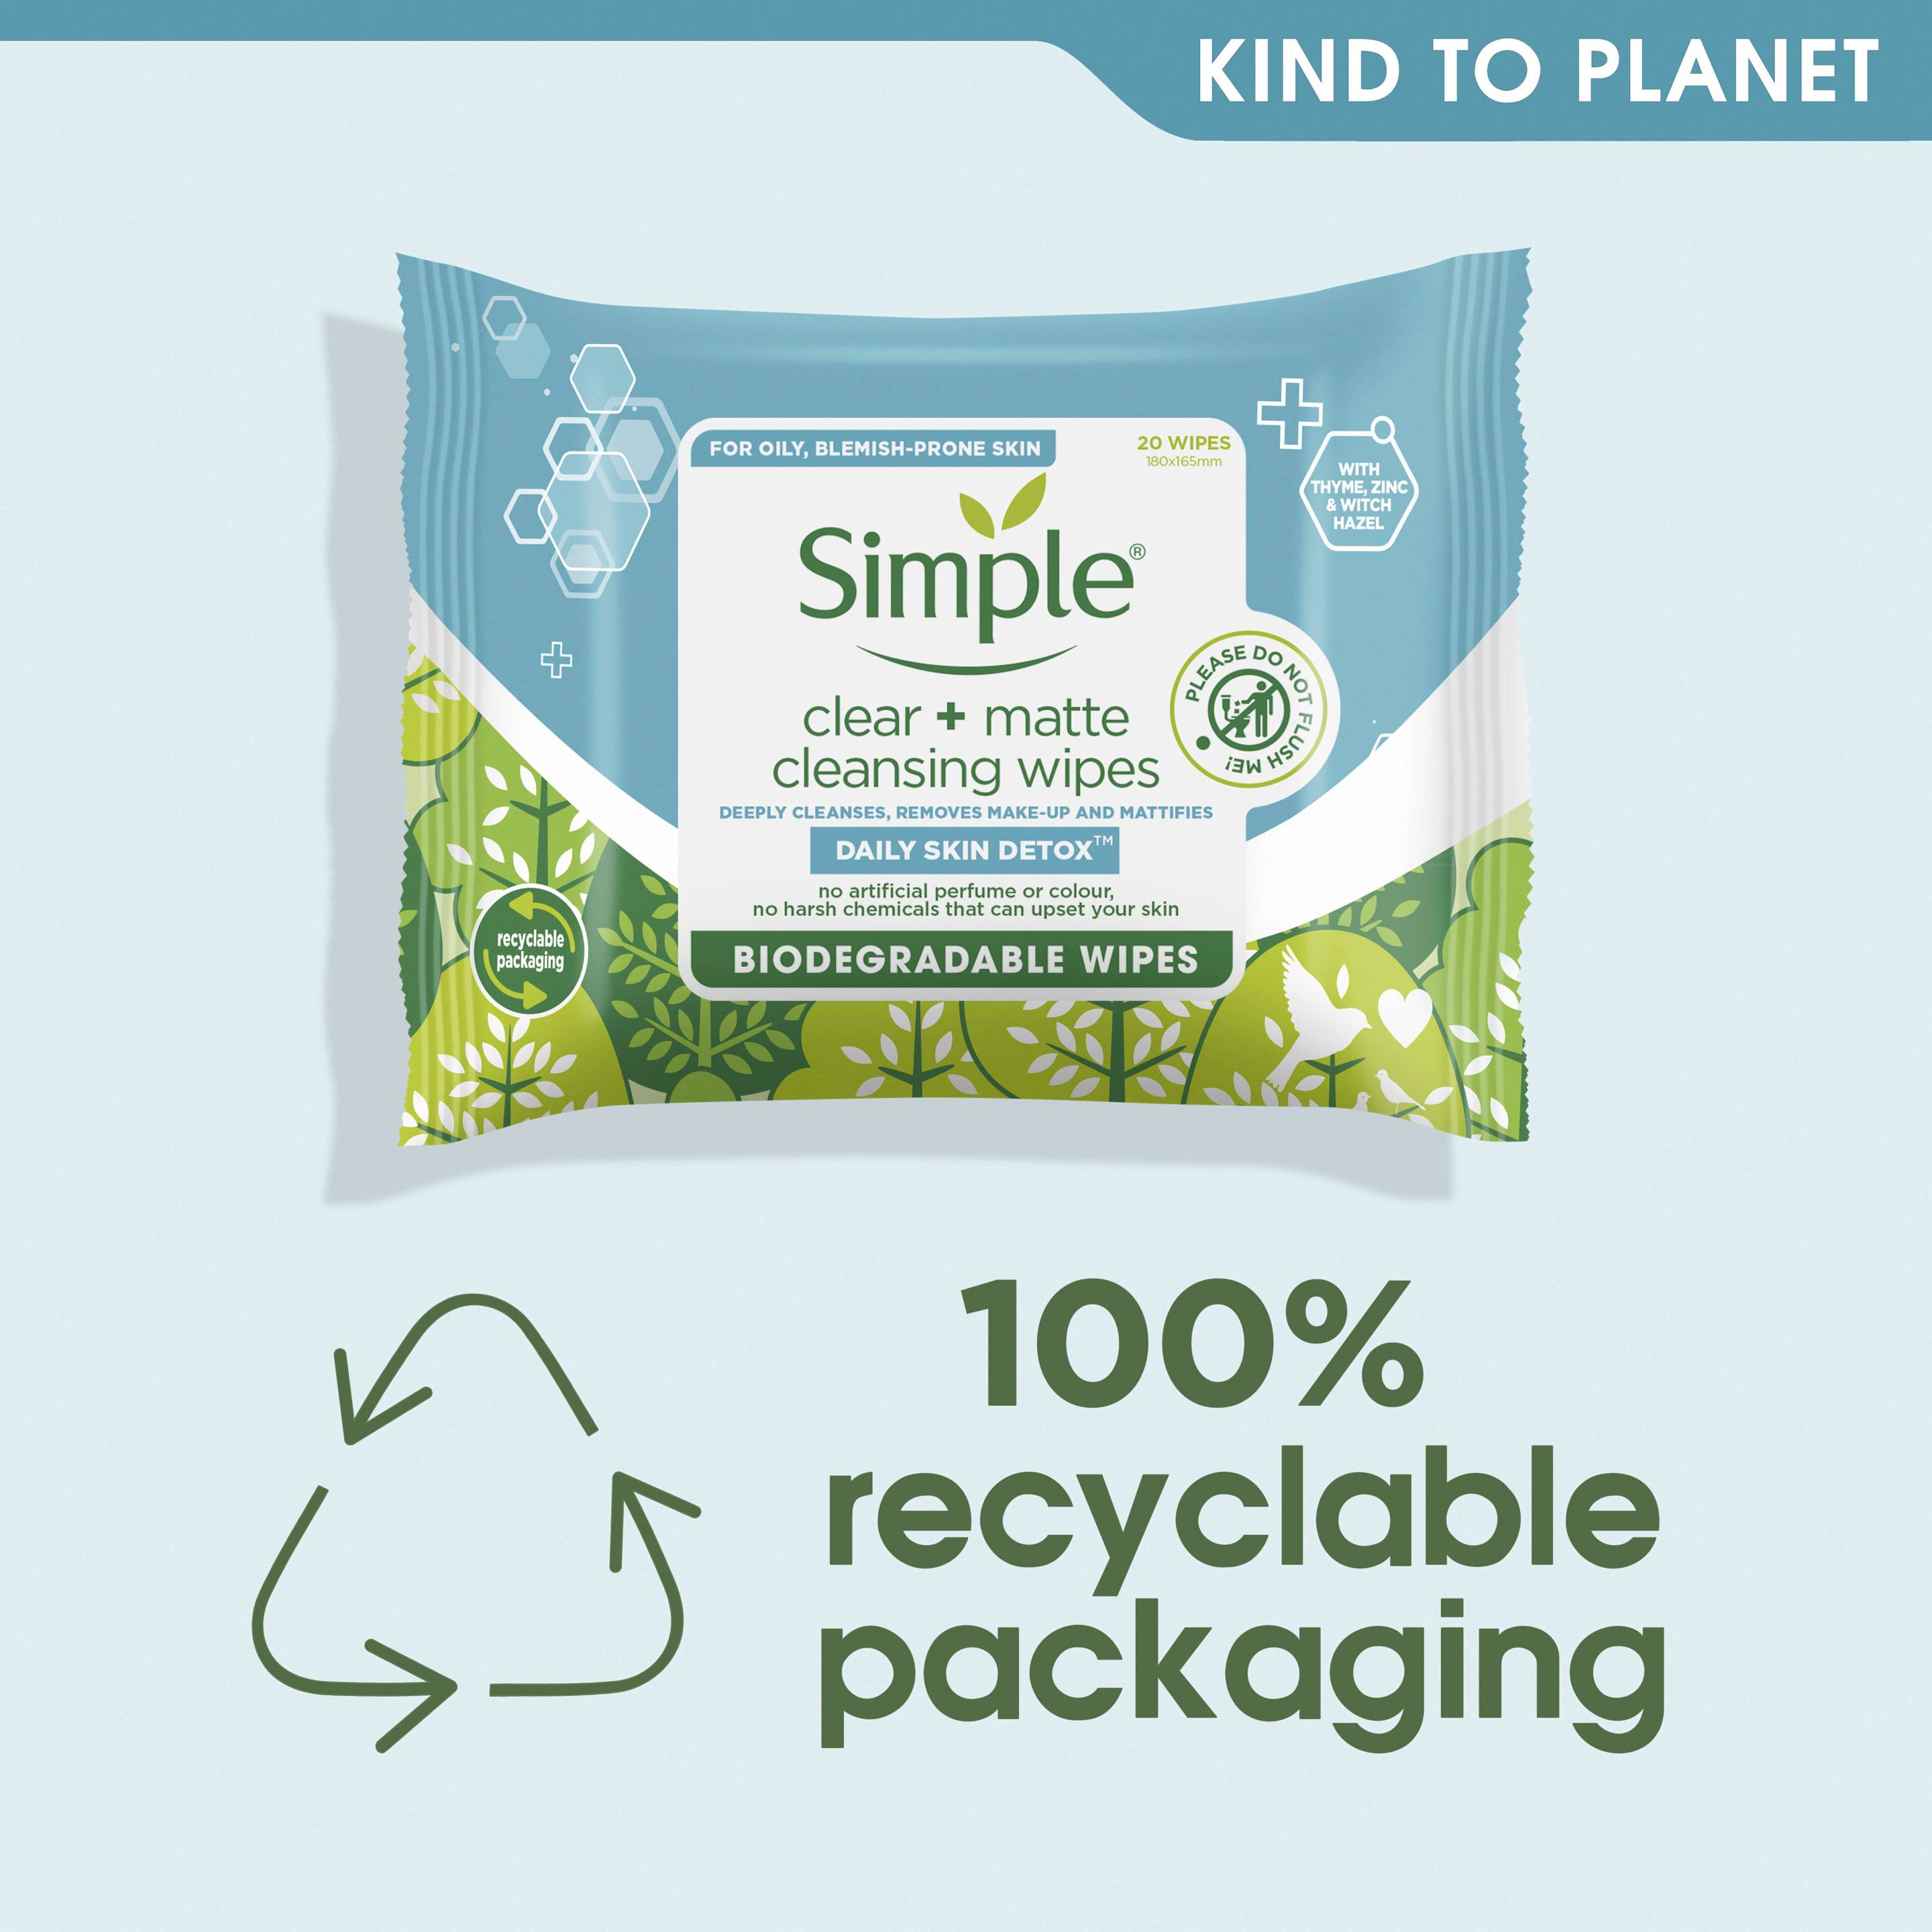 Simple DSD Clear & Matte Cleansing Wipes Kind to Planet